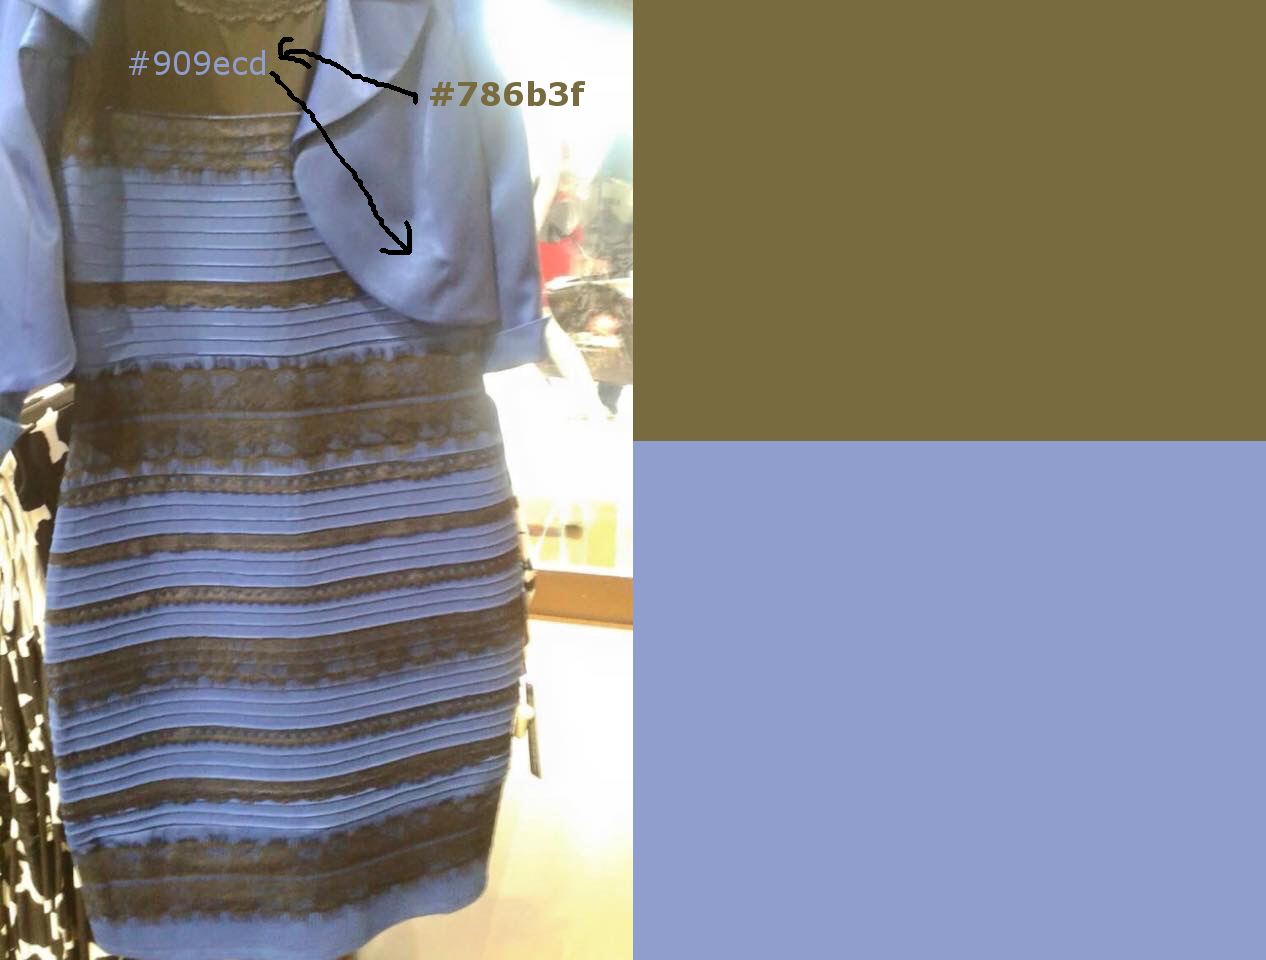 White and gold dress or blue and black backgrounds